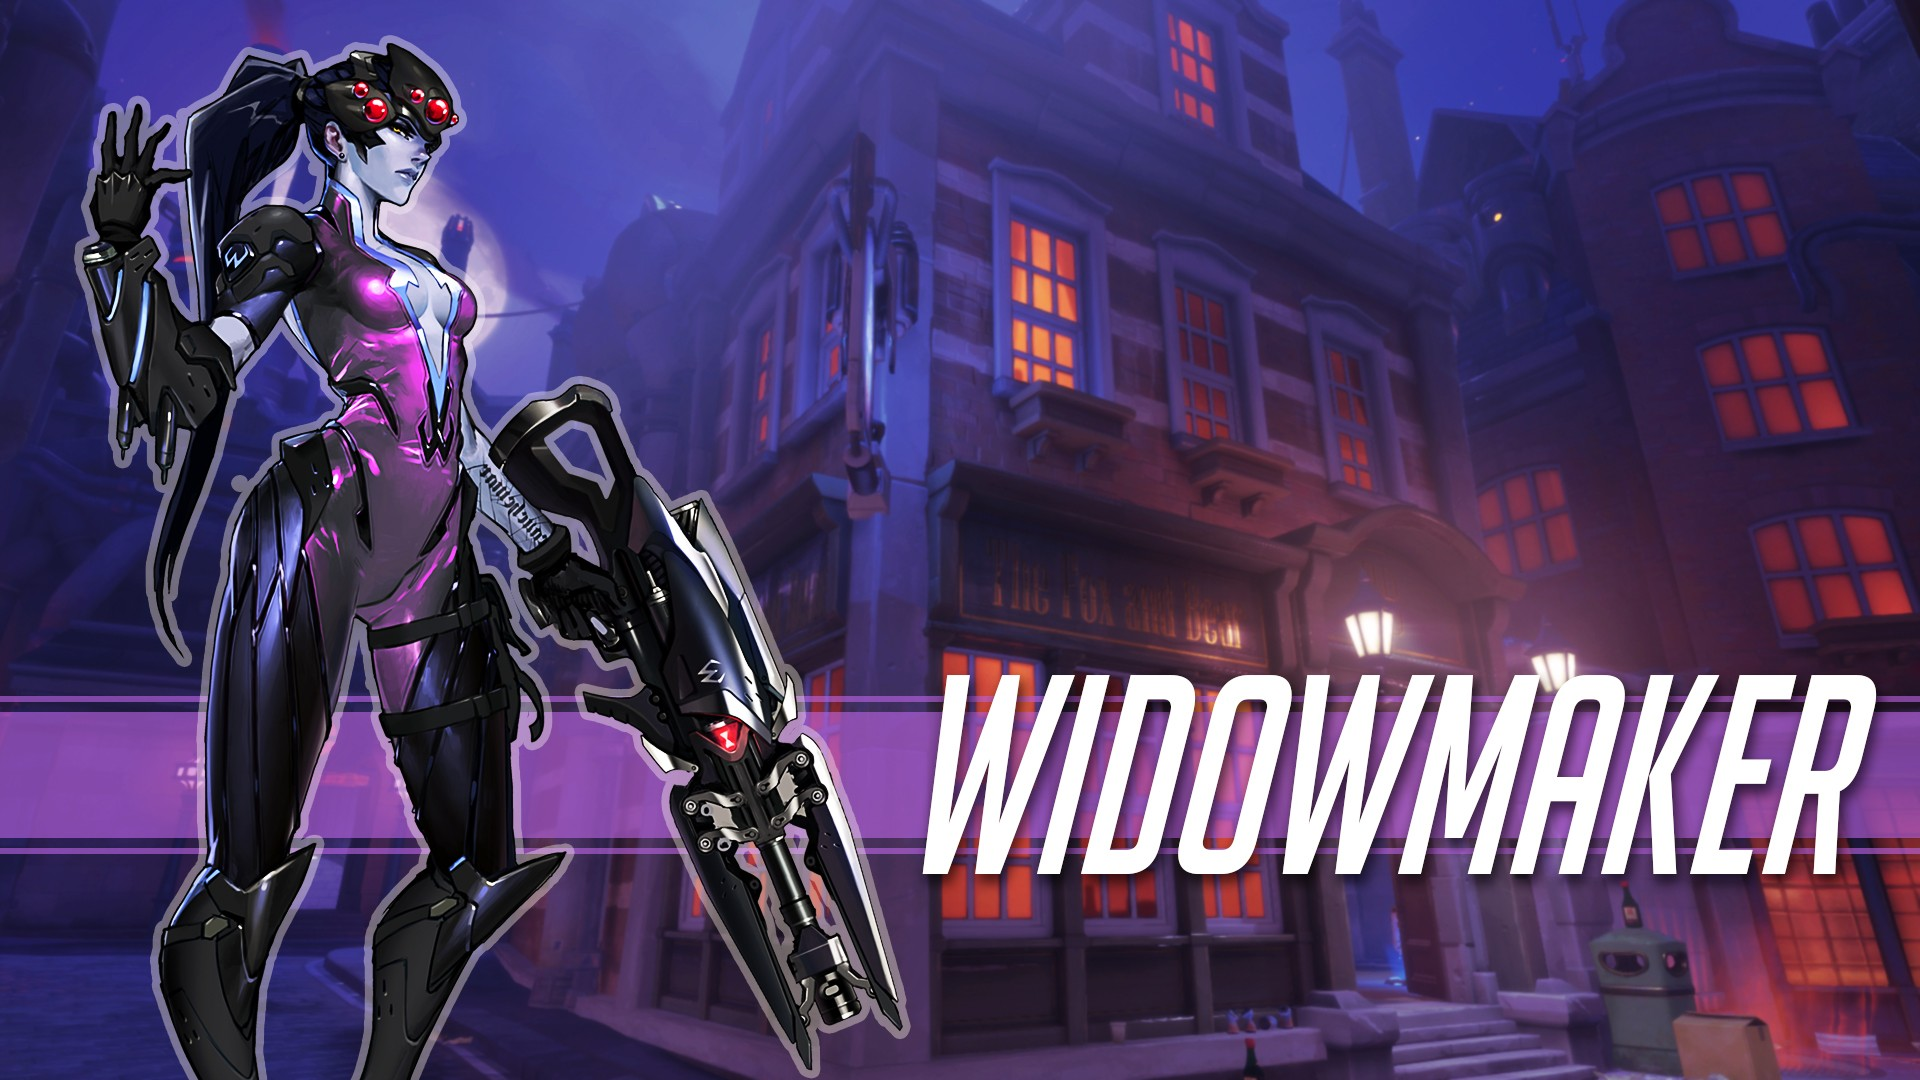 widowmaker overwatch wallpaper 1920x1080 - photo #44